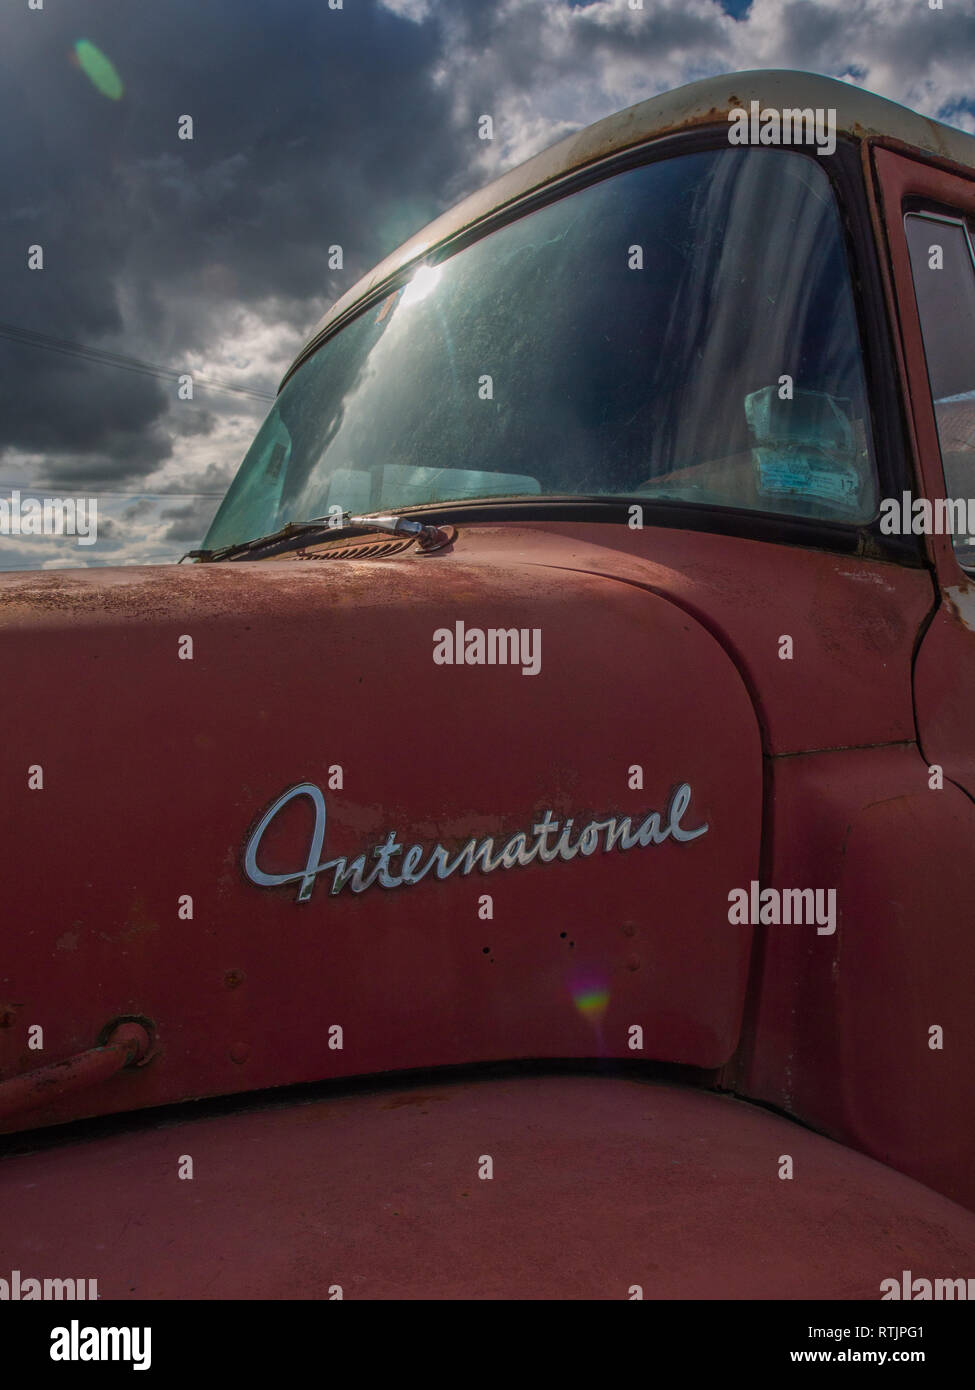 Red International truck, windscreen catching the light, curved body, Endeans Mill, Waimiha, King Country, New Zealand - Stock Image